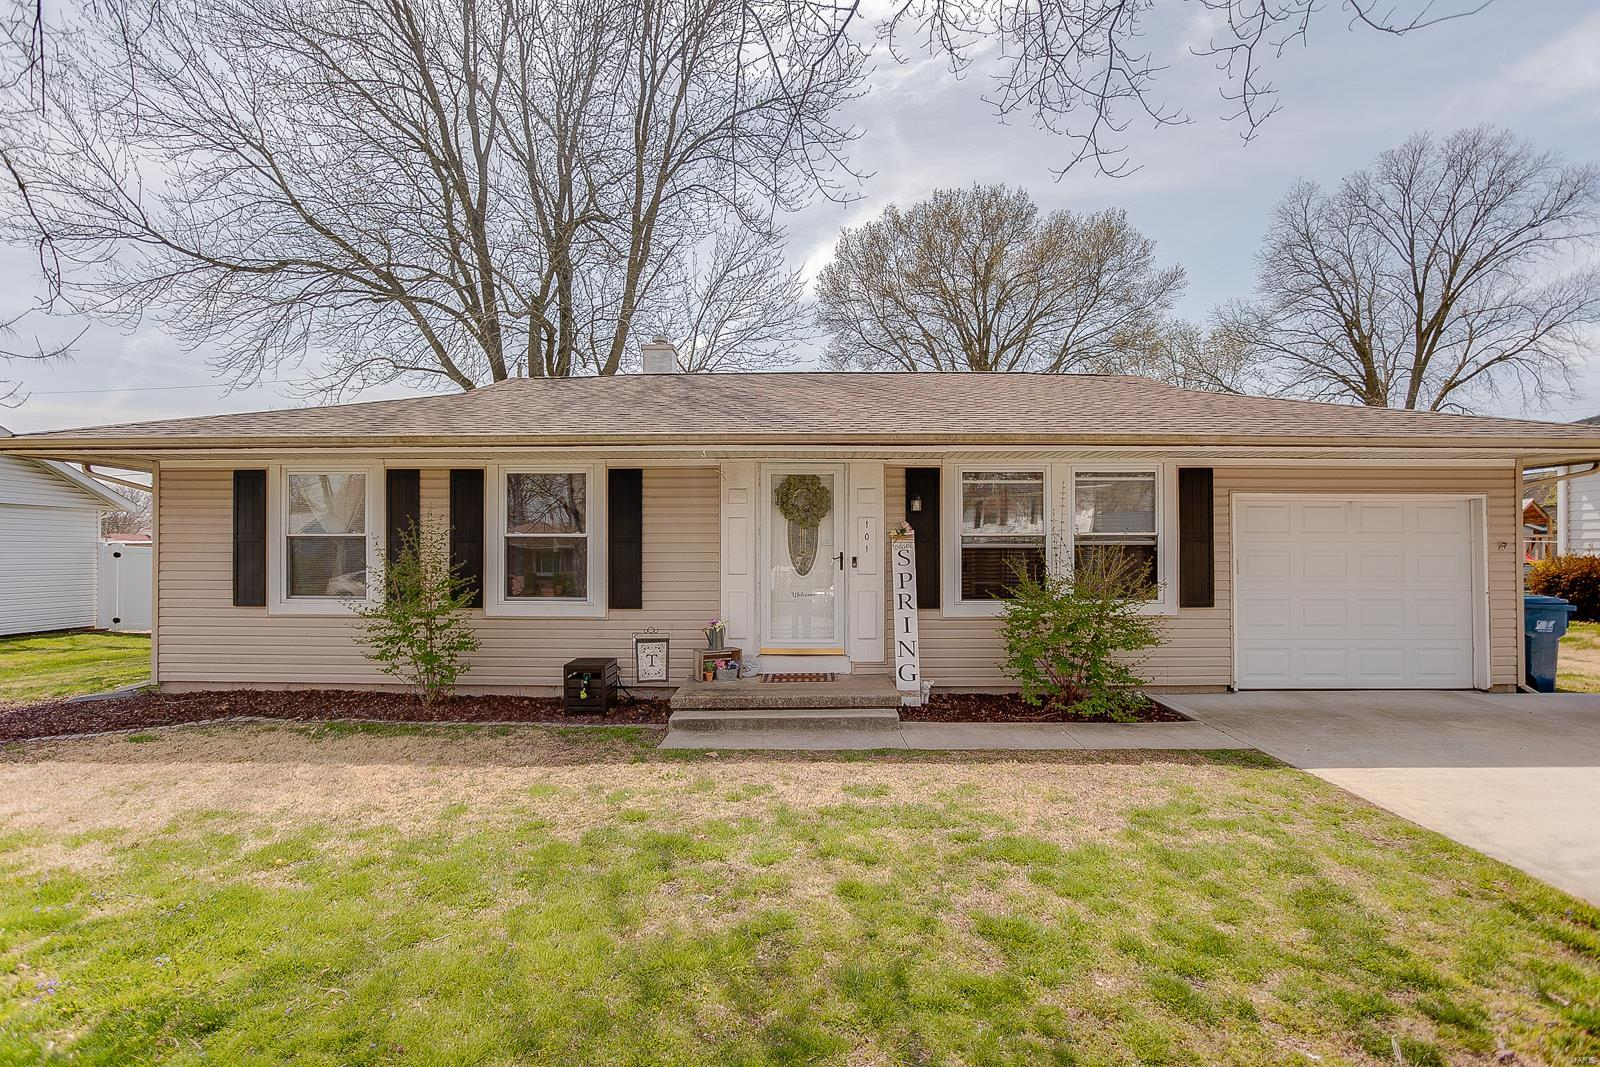 101 W Poos Drive Property Photo - New Baden, IL real estate listing